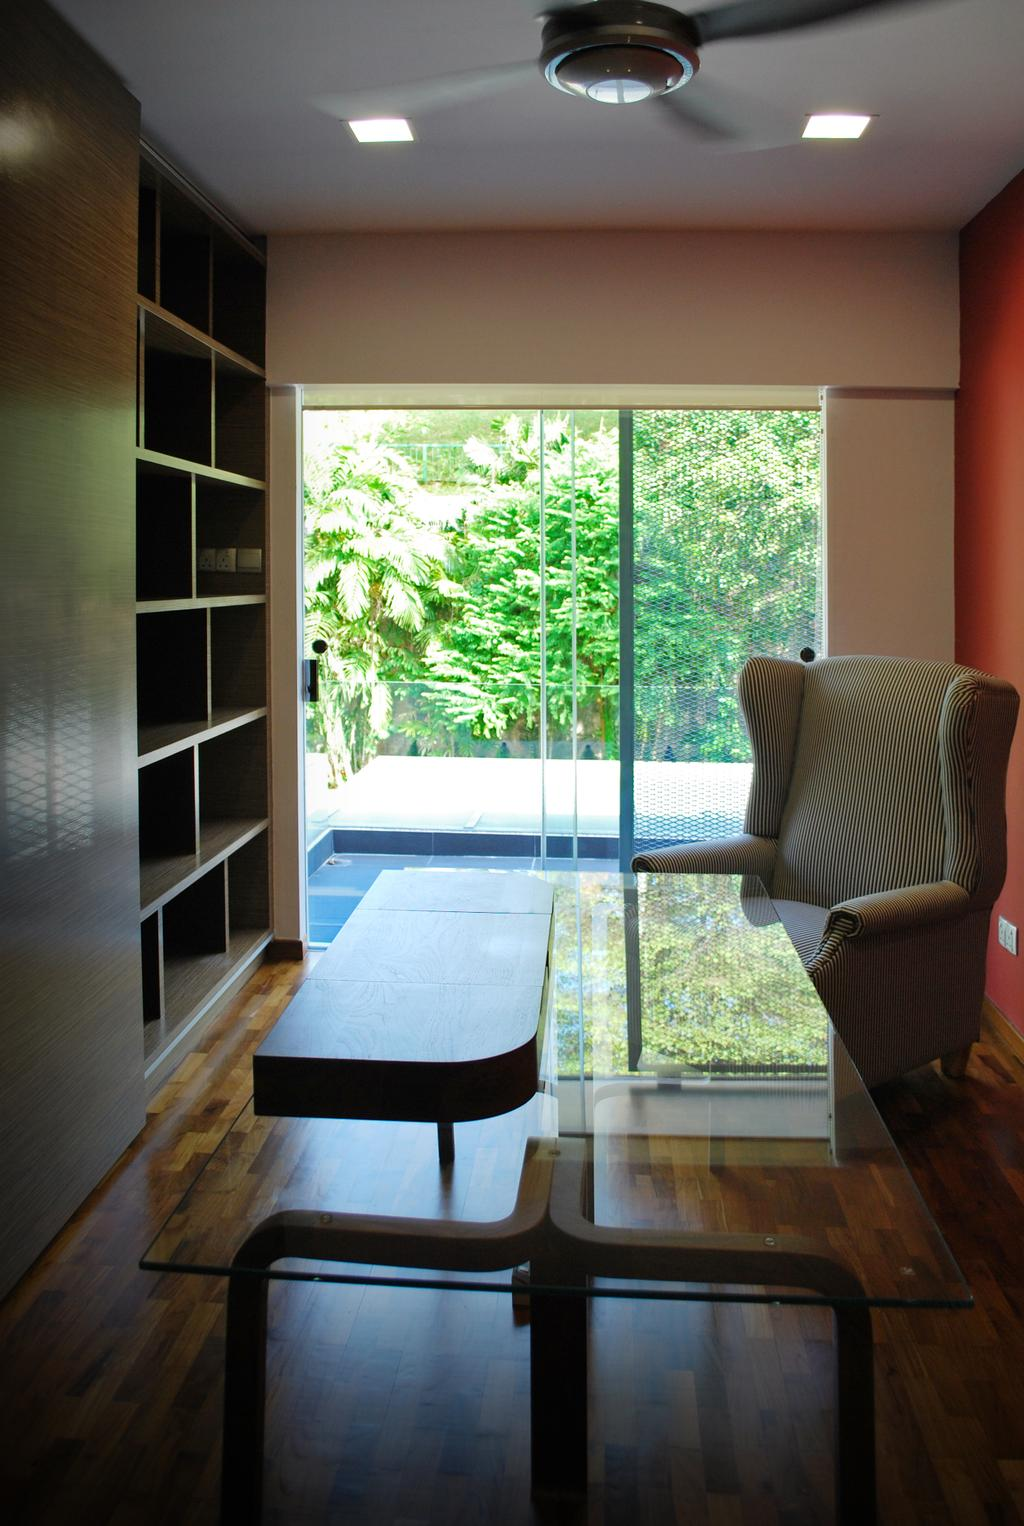 Transitional, Landed, Study, Tagore Avenue, Architect, Czarl Architects, Chair, Furniture, Flora, Jar, Plant, Potted Plant, Pottery, Vase, Bookcase